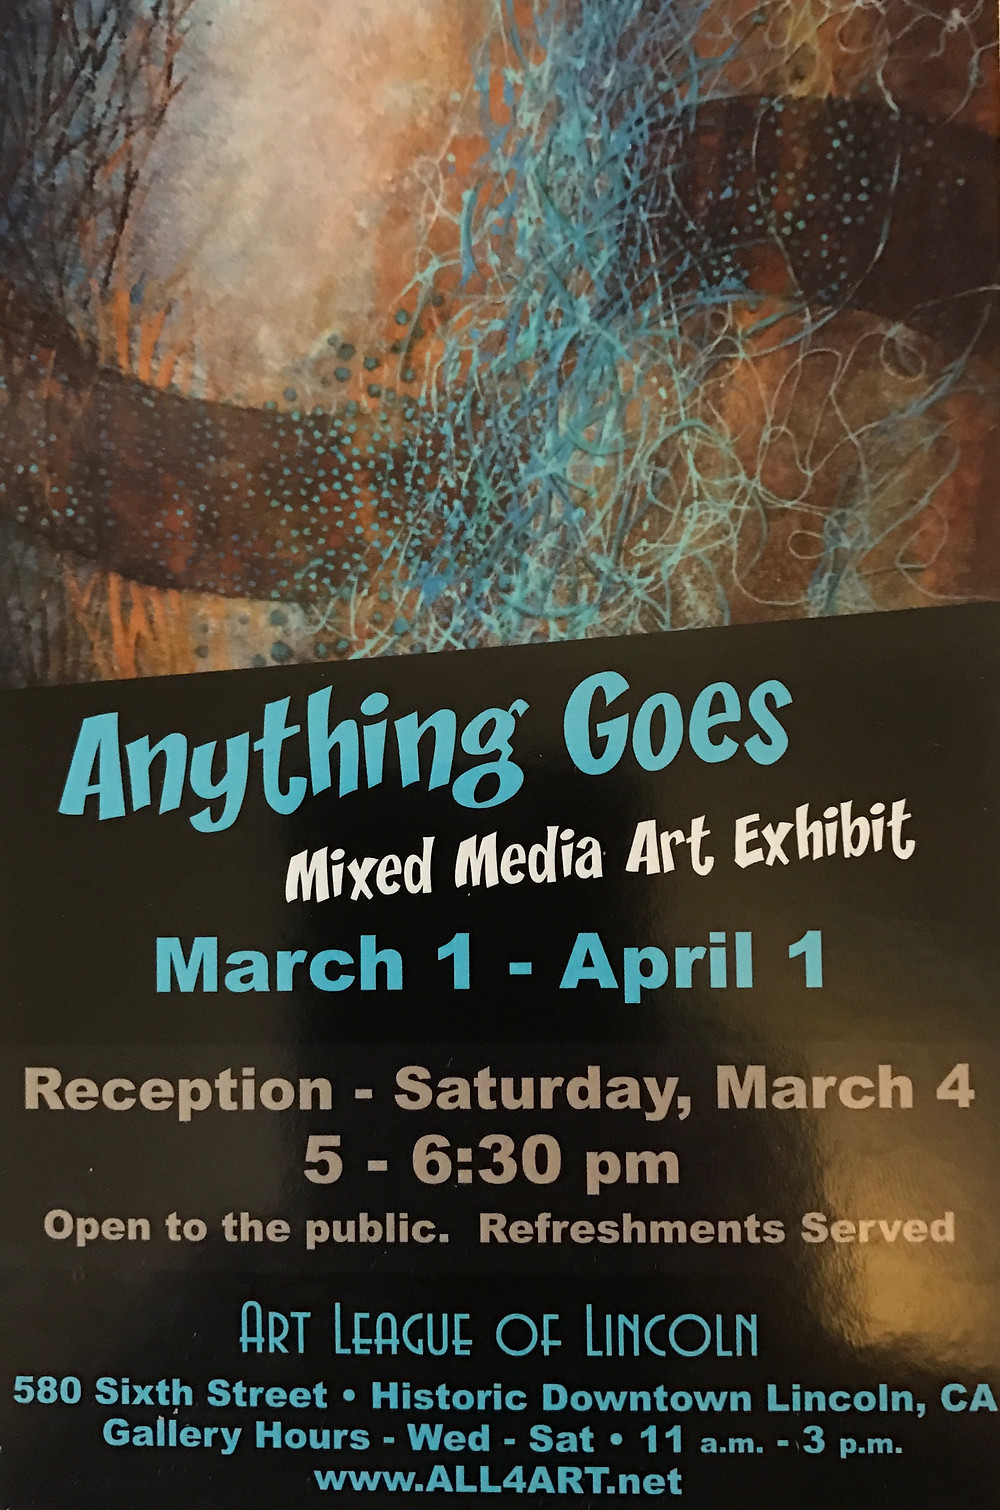 Honored to be a part of this exhibition.  Hope to see some of you Saturday!